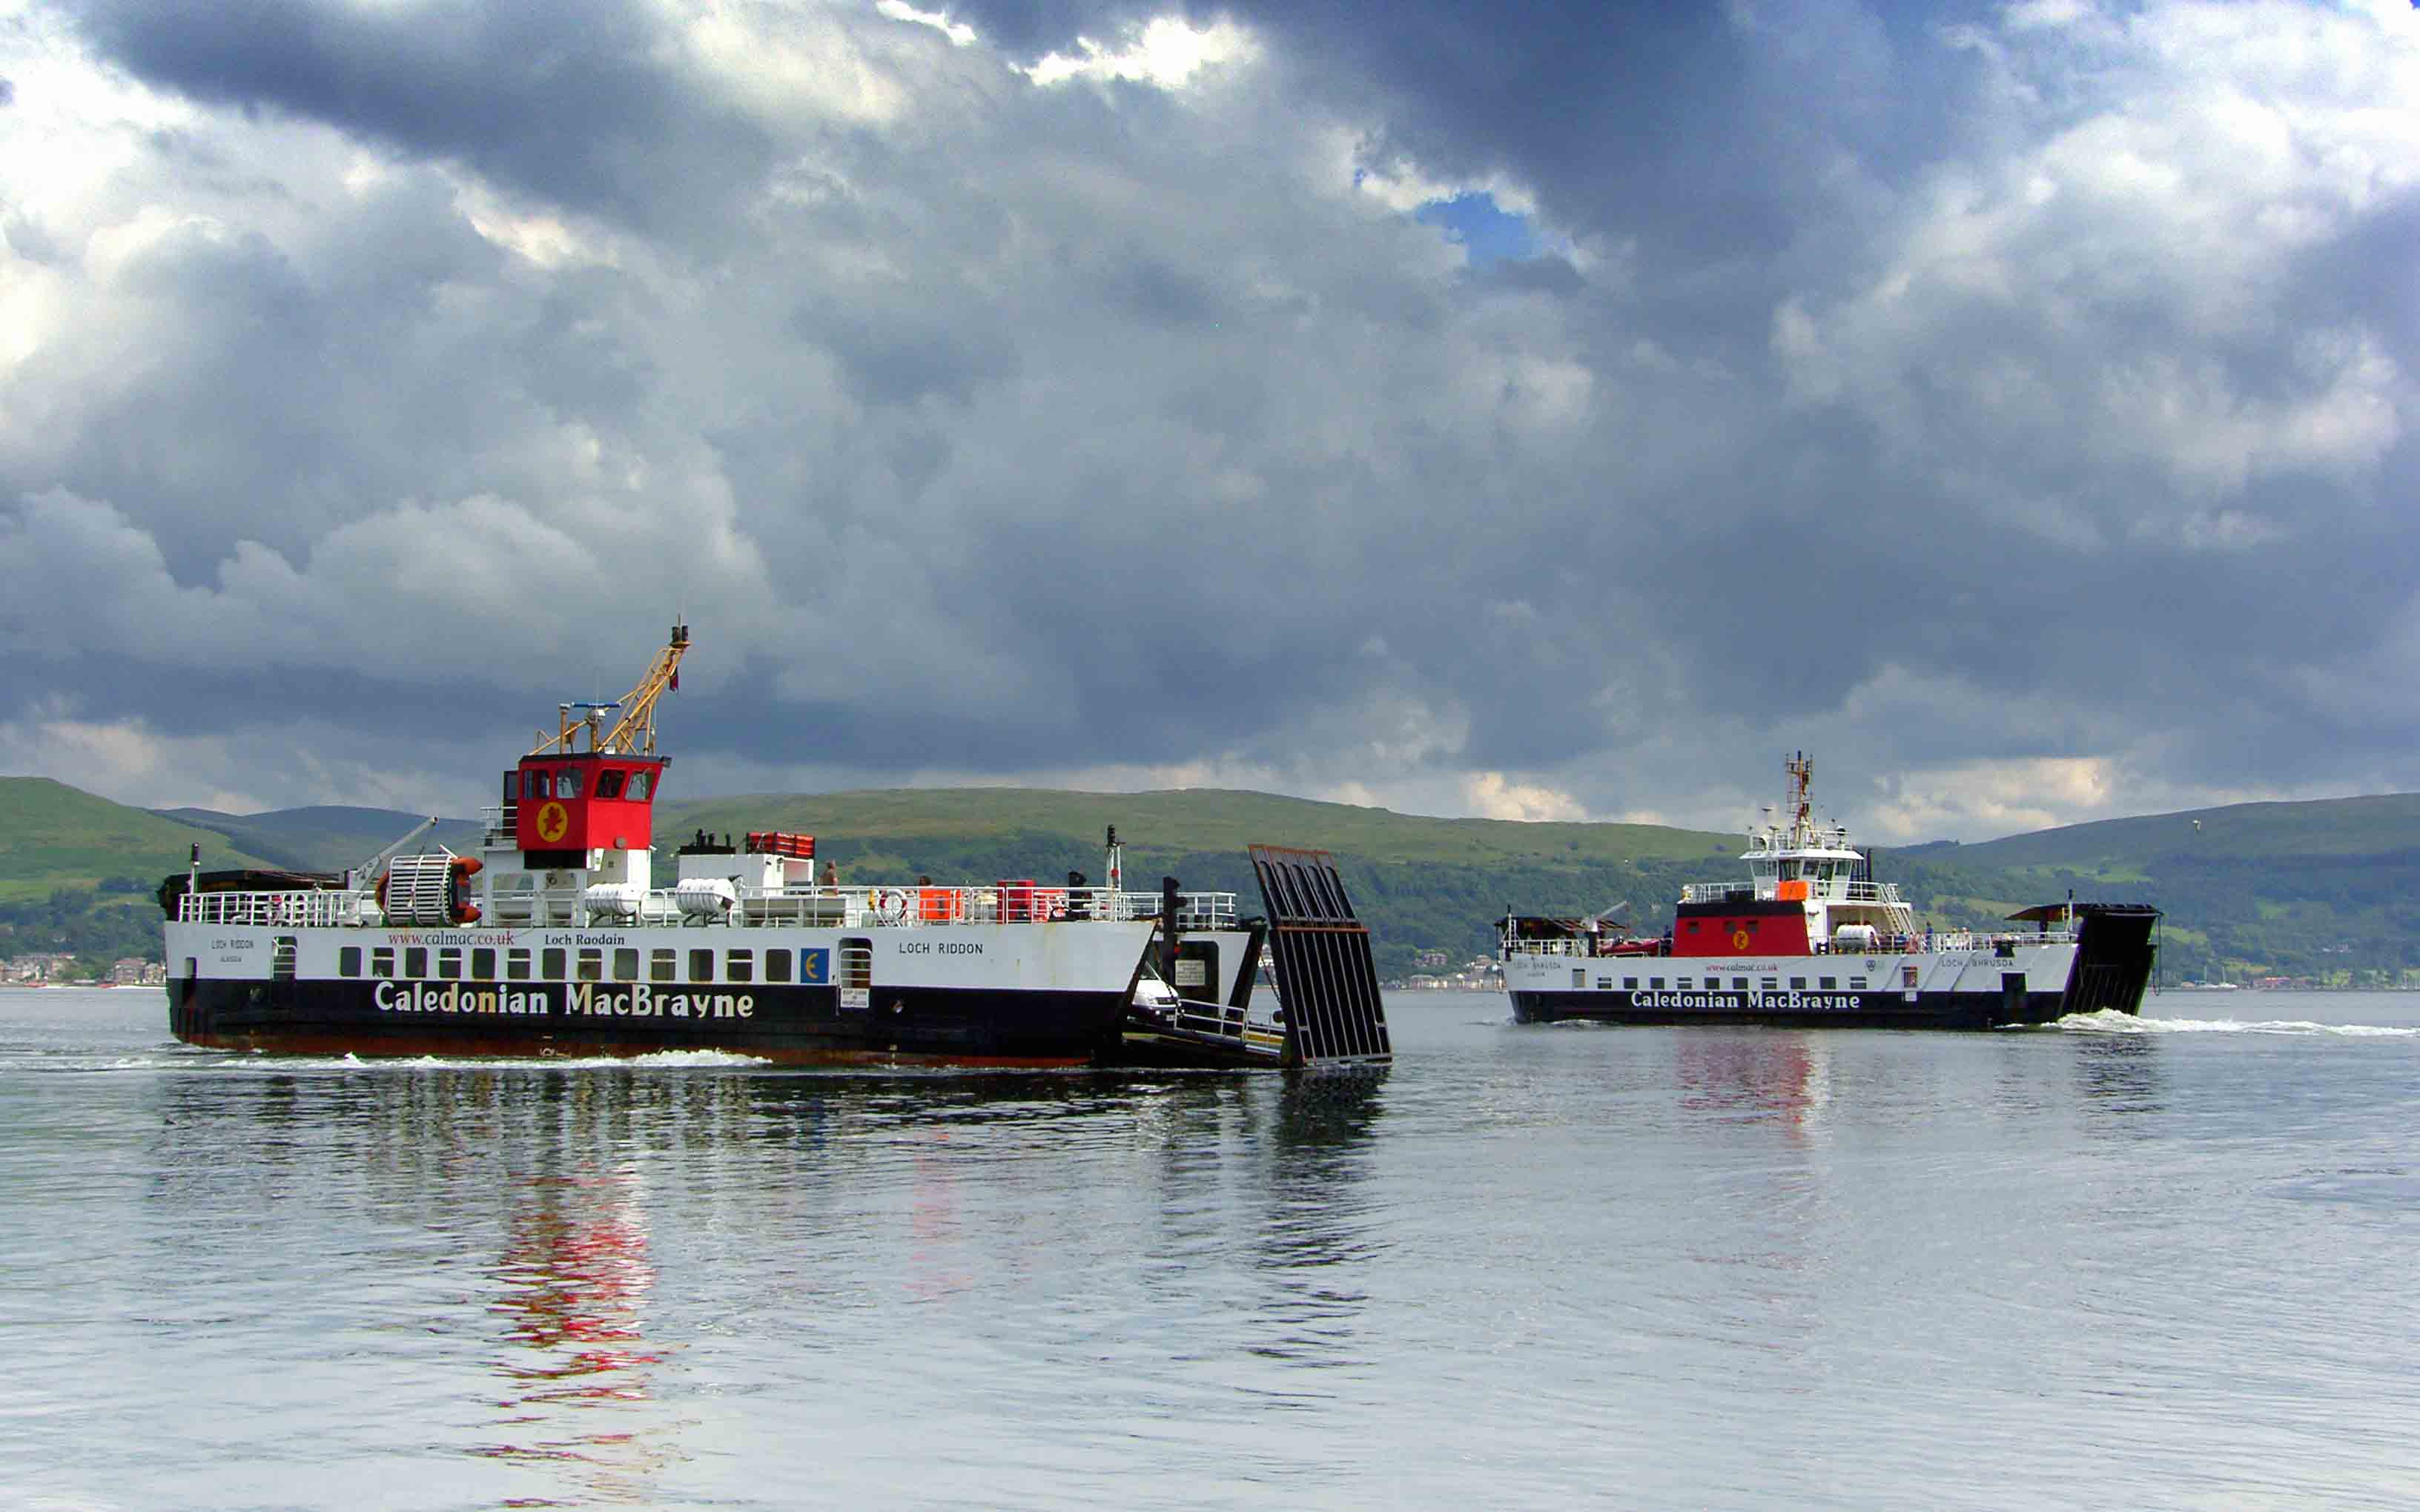 Loch Riddon and Loch Bhrusda off Cumbrae Slip (Ships of CalMac)